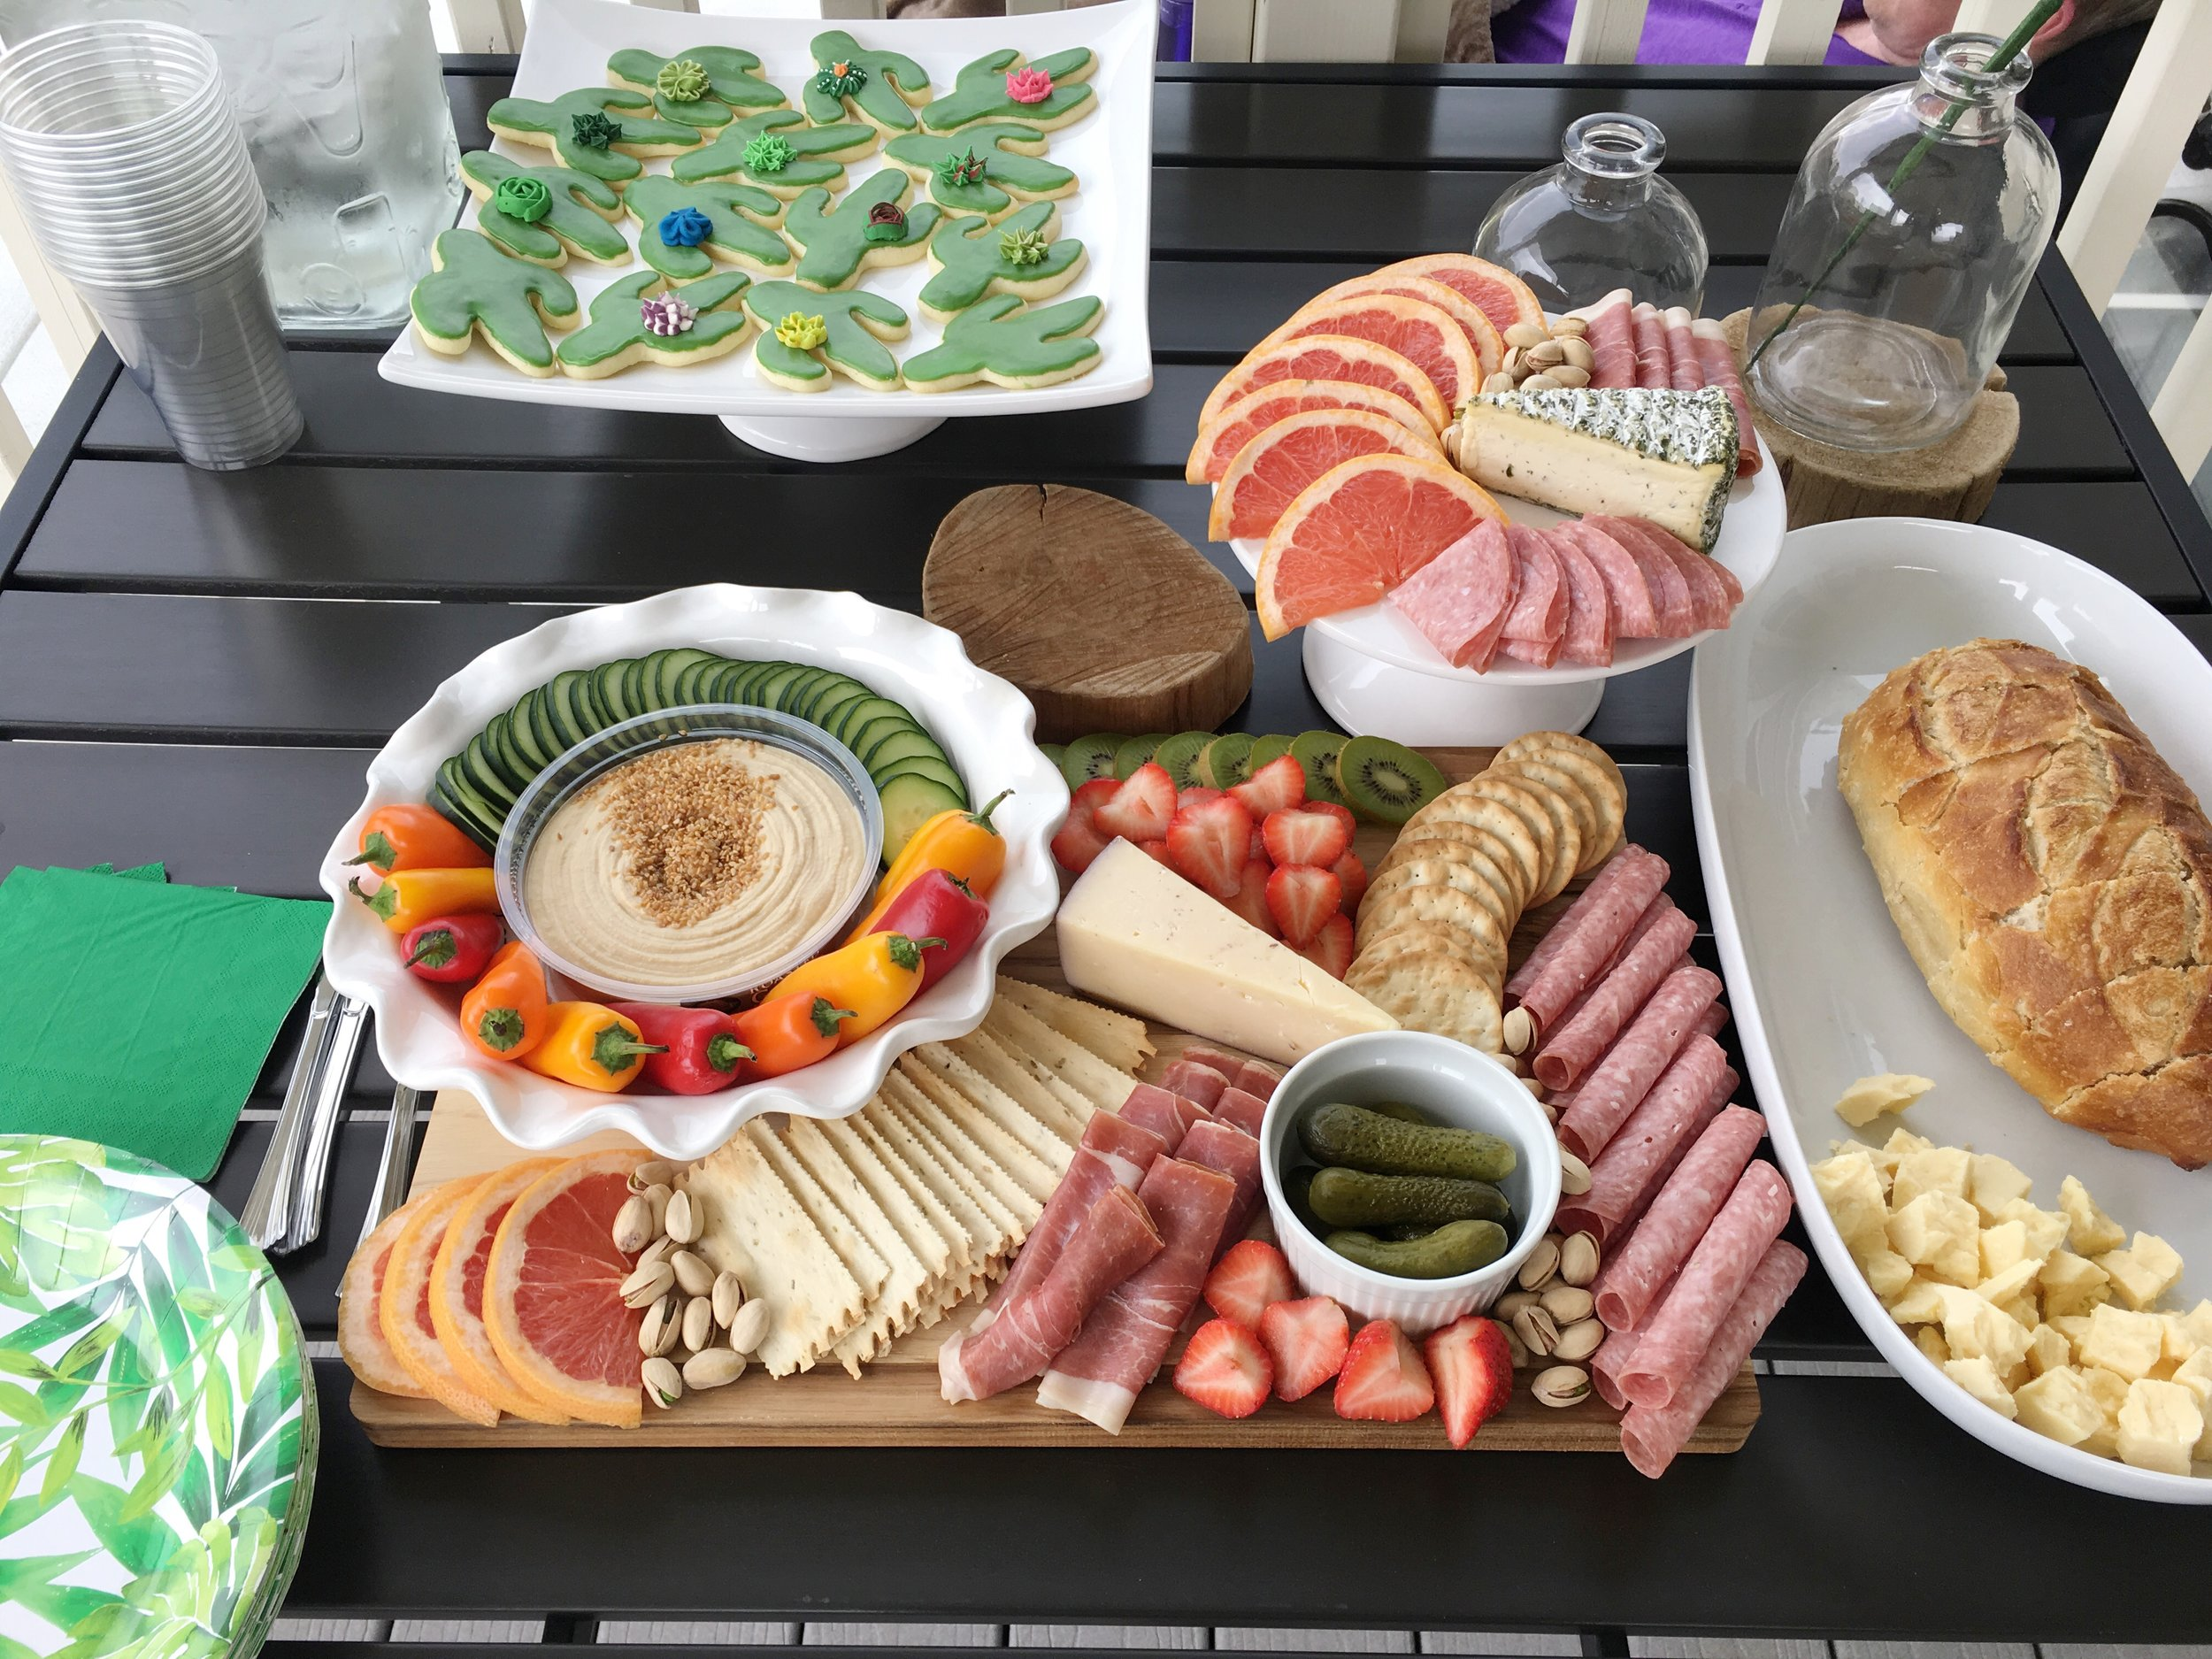 Food for party idea: Grazing board